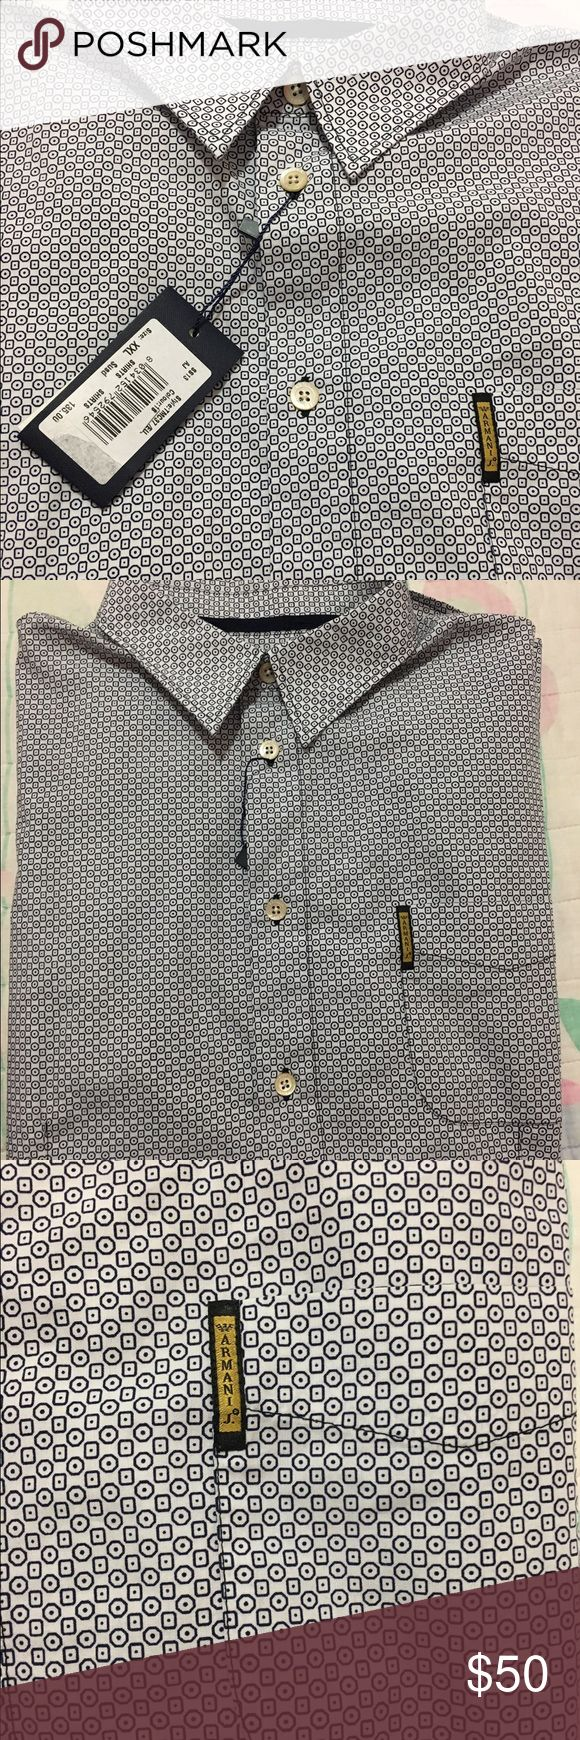 Armani Jeans shirt Armani Jeans XXL shirt. Armani label on the front pocket. Chest measurement is 25 inches. Armani Jeans Shirts Casual Button Down Shirts